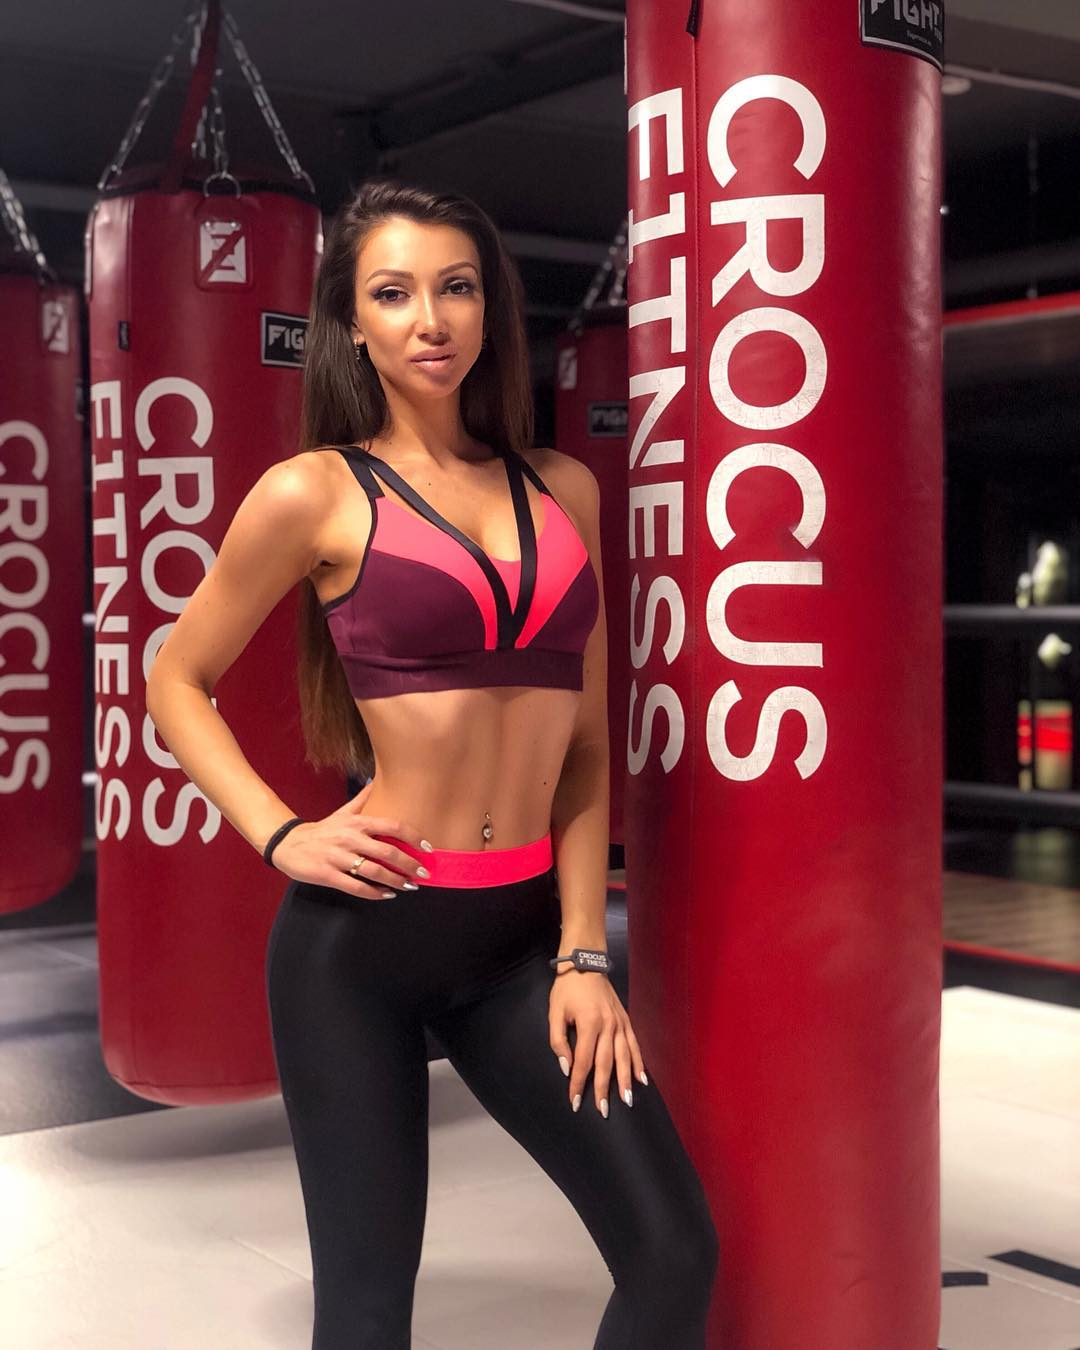 Julia with sporting long hairstyle in the Crocus fitness